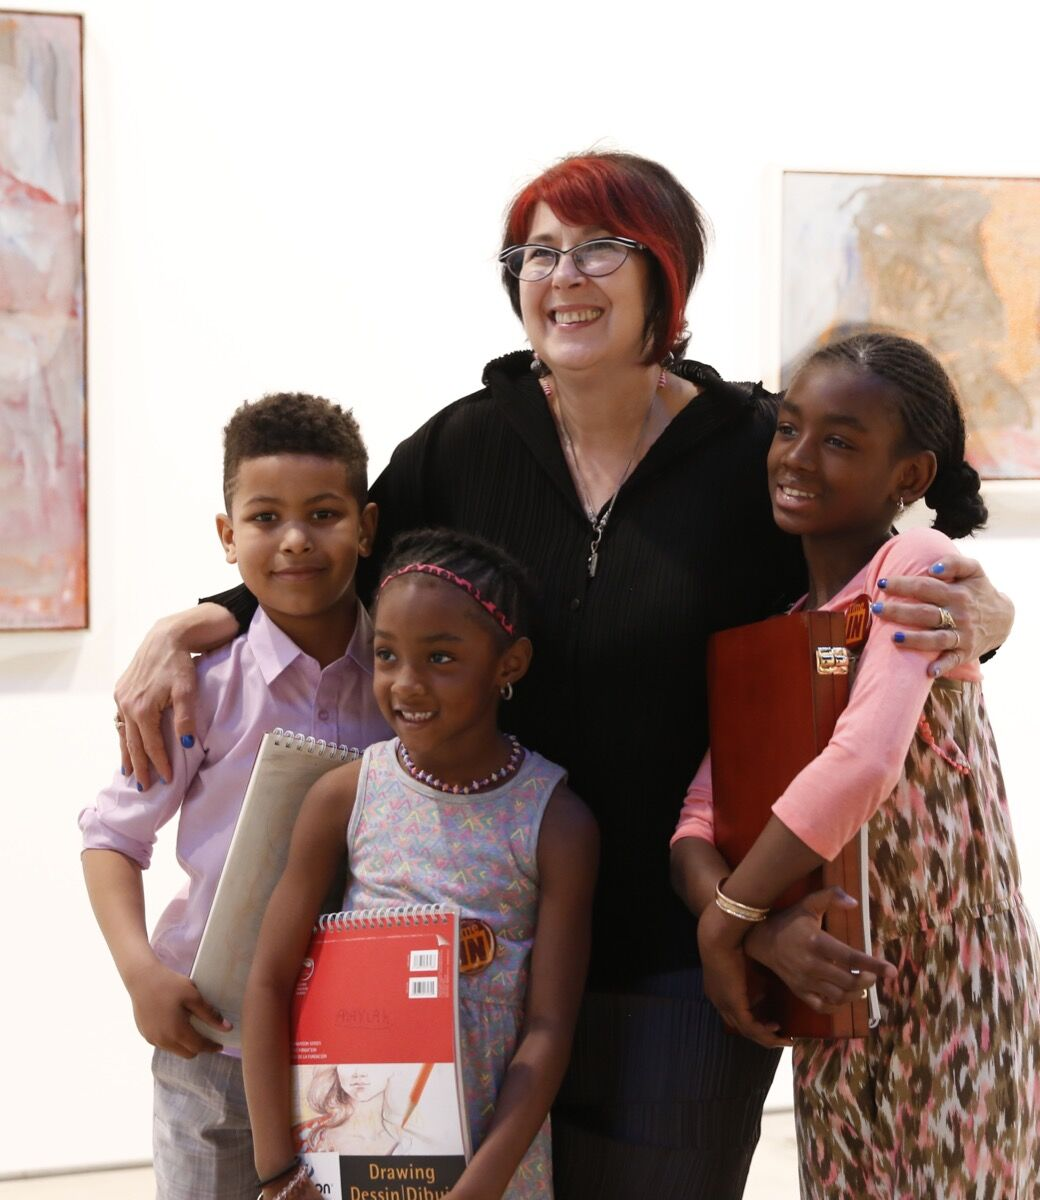 Cyndie Berthezene with Time In students. Photo courtesy of Time In Children's Arts Initiative.